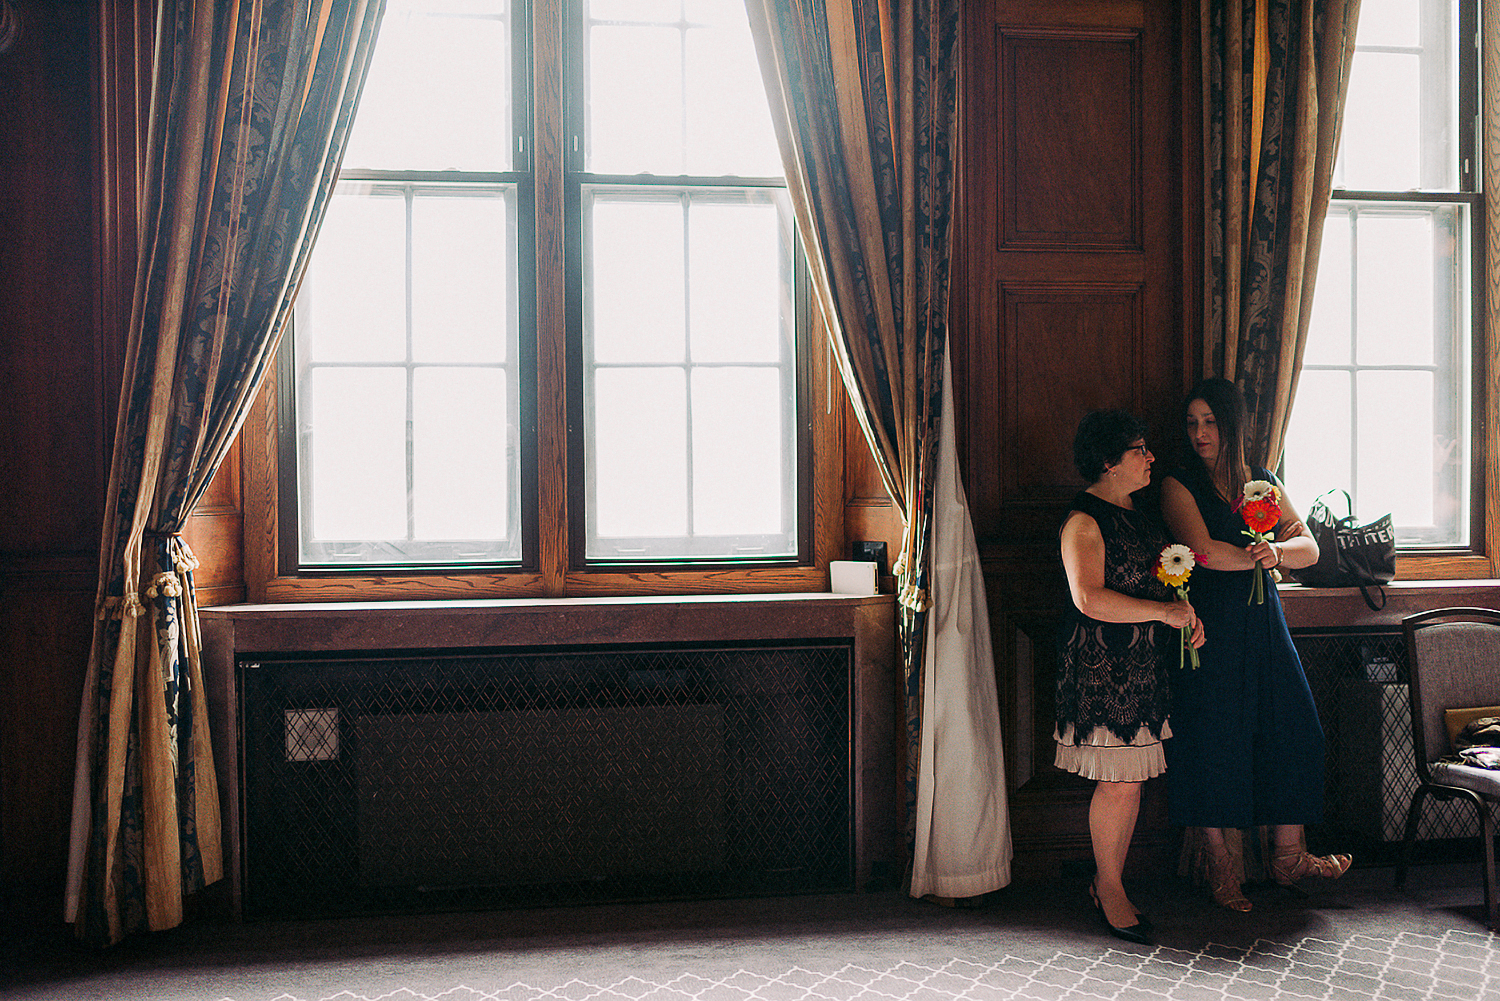 20-One-King-West-Intimate-Elopement-Wedding-Analog-Film-Wedding-Photographer-Toronto-Wedding-Photography-Candid-Moment.jpg